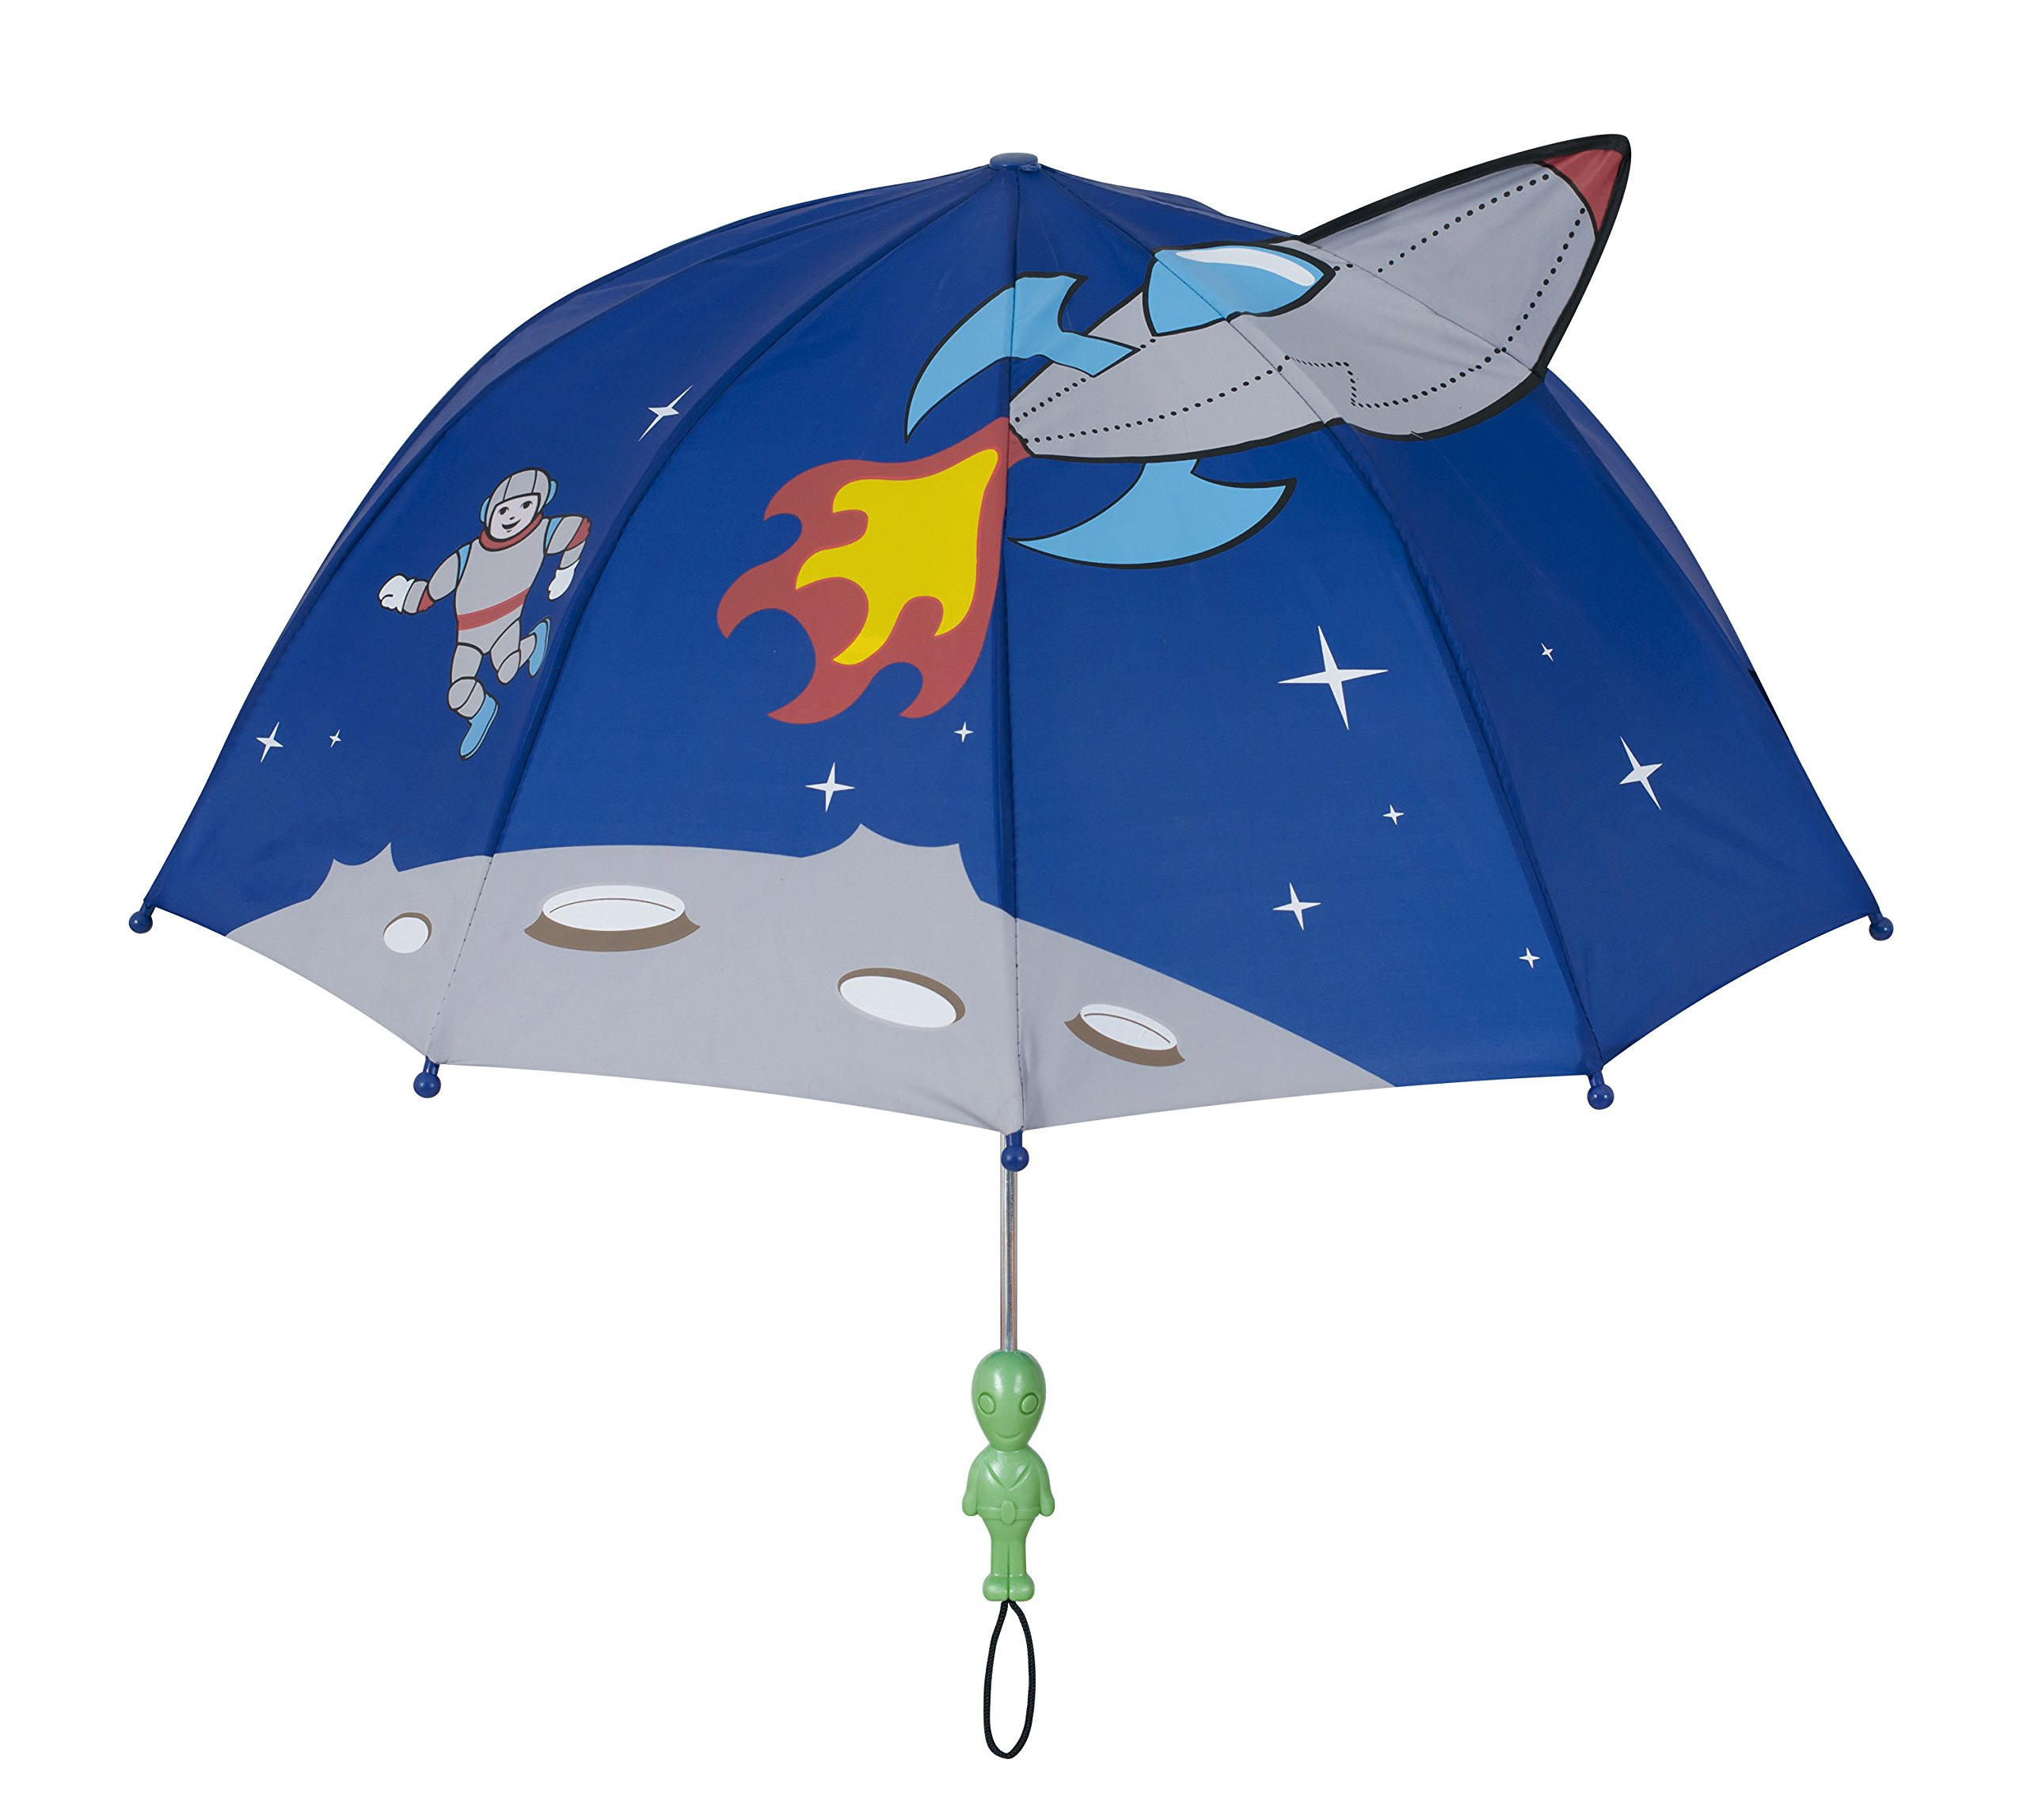 Kidorable Kids Space Umbrella, Blue, One Size for Toddlers and Big Kids, Lightweight Child-Sized Nylon Rain Proof Umbrella